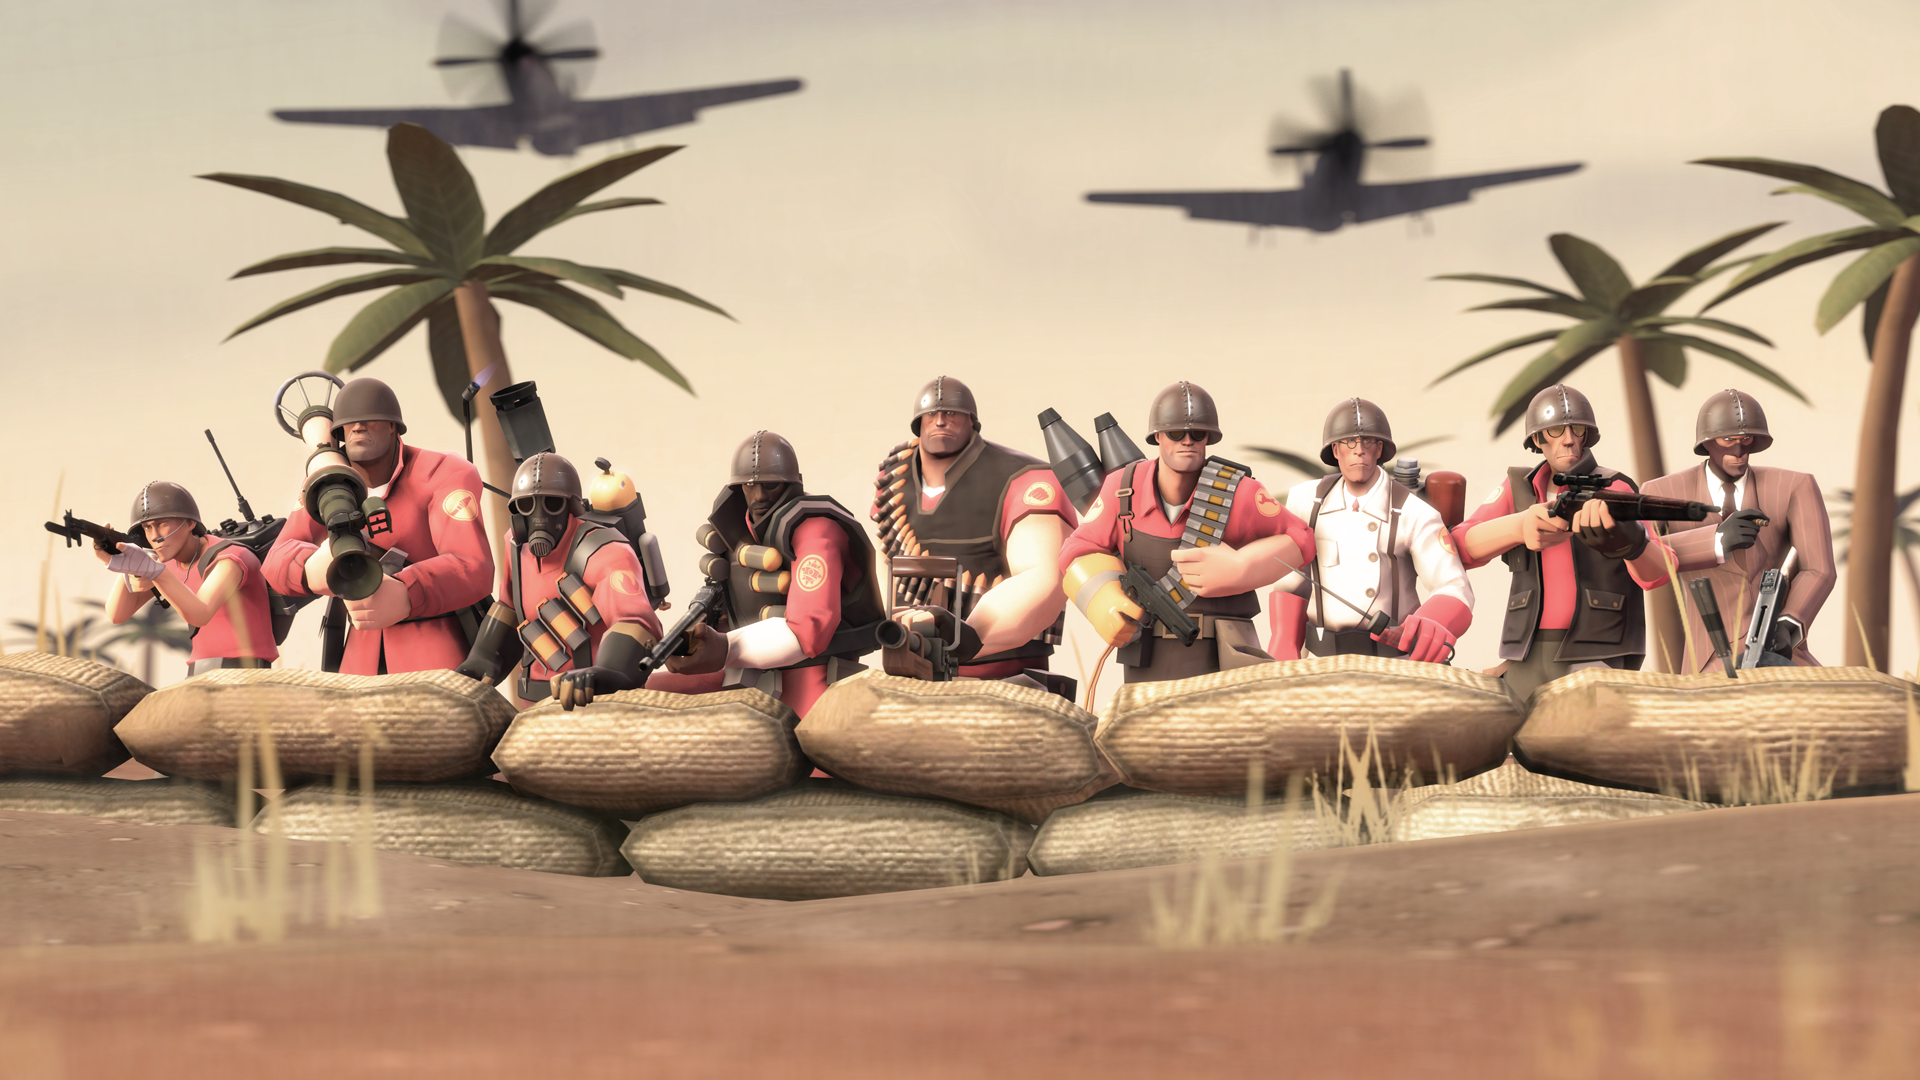 Team Fortress 2, 1920x1080 Charles Penney